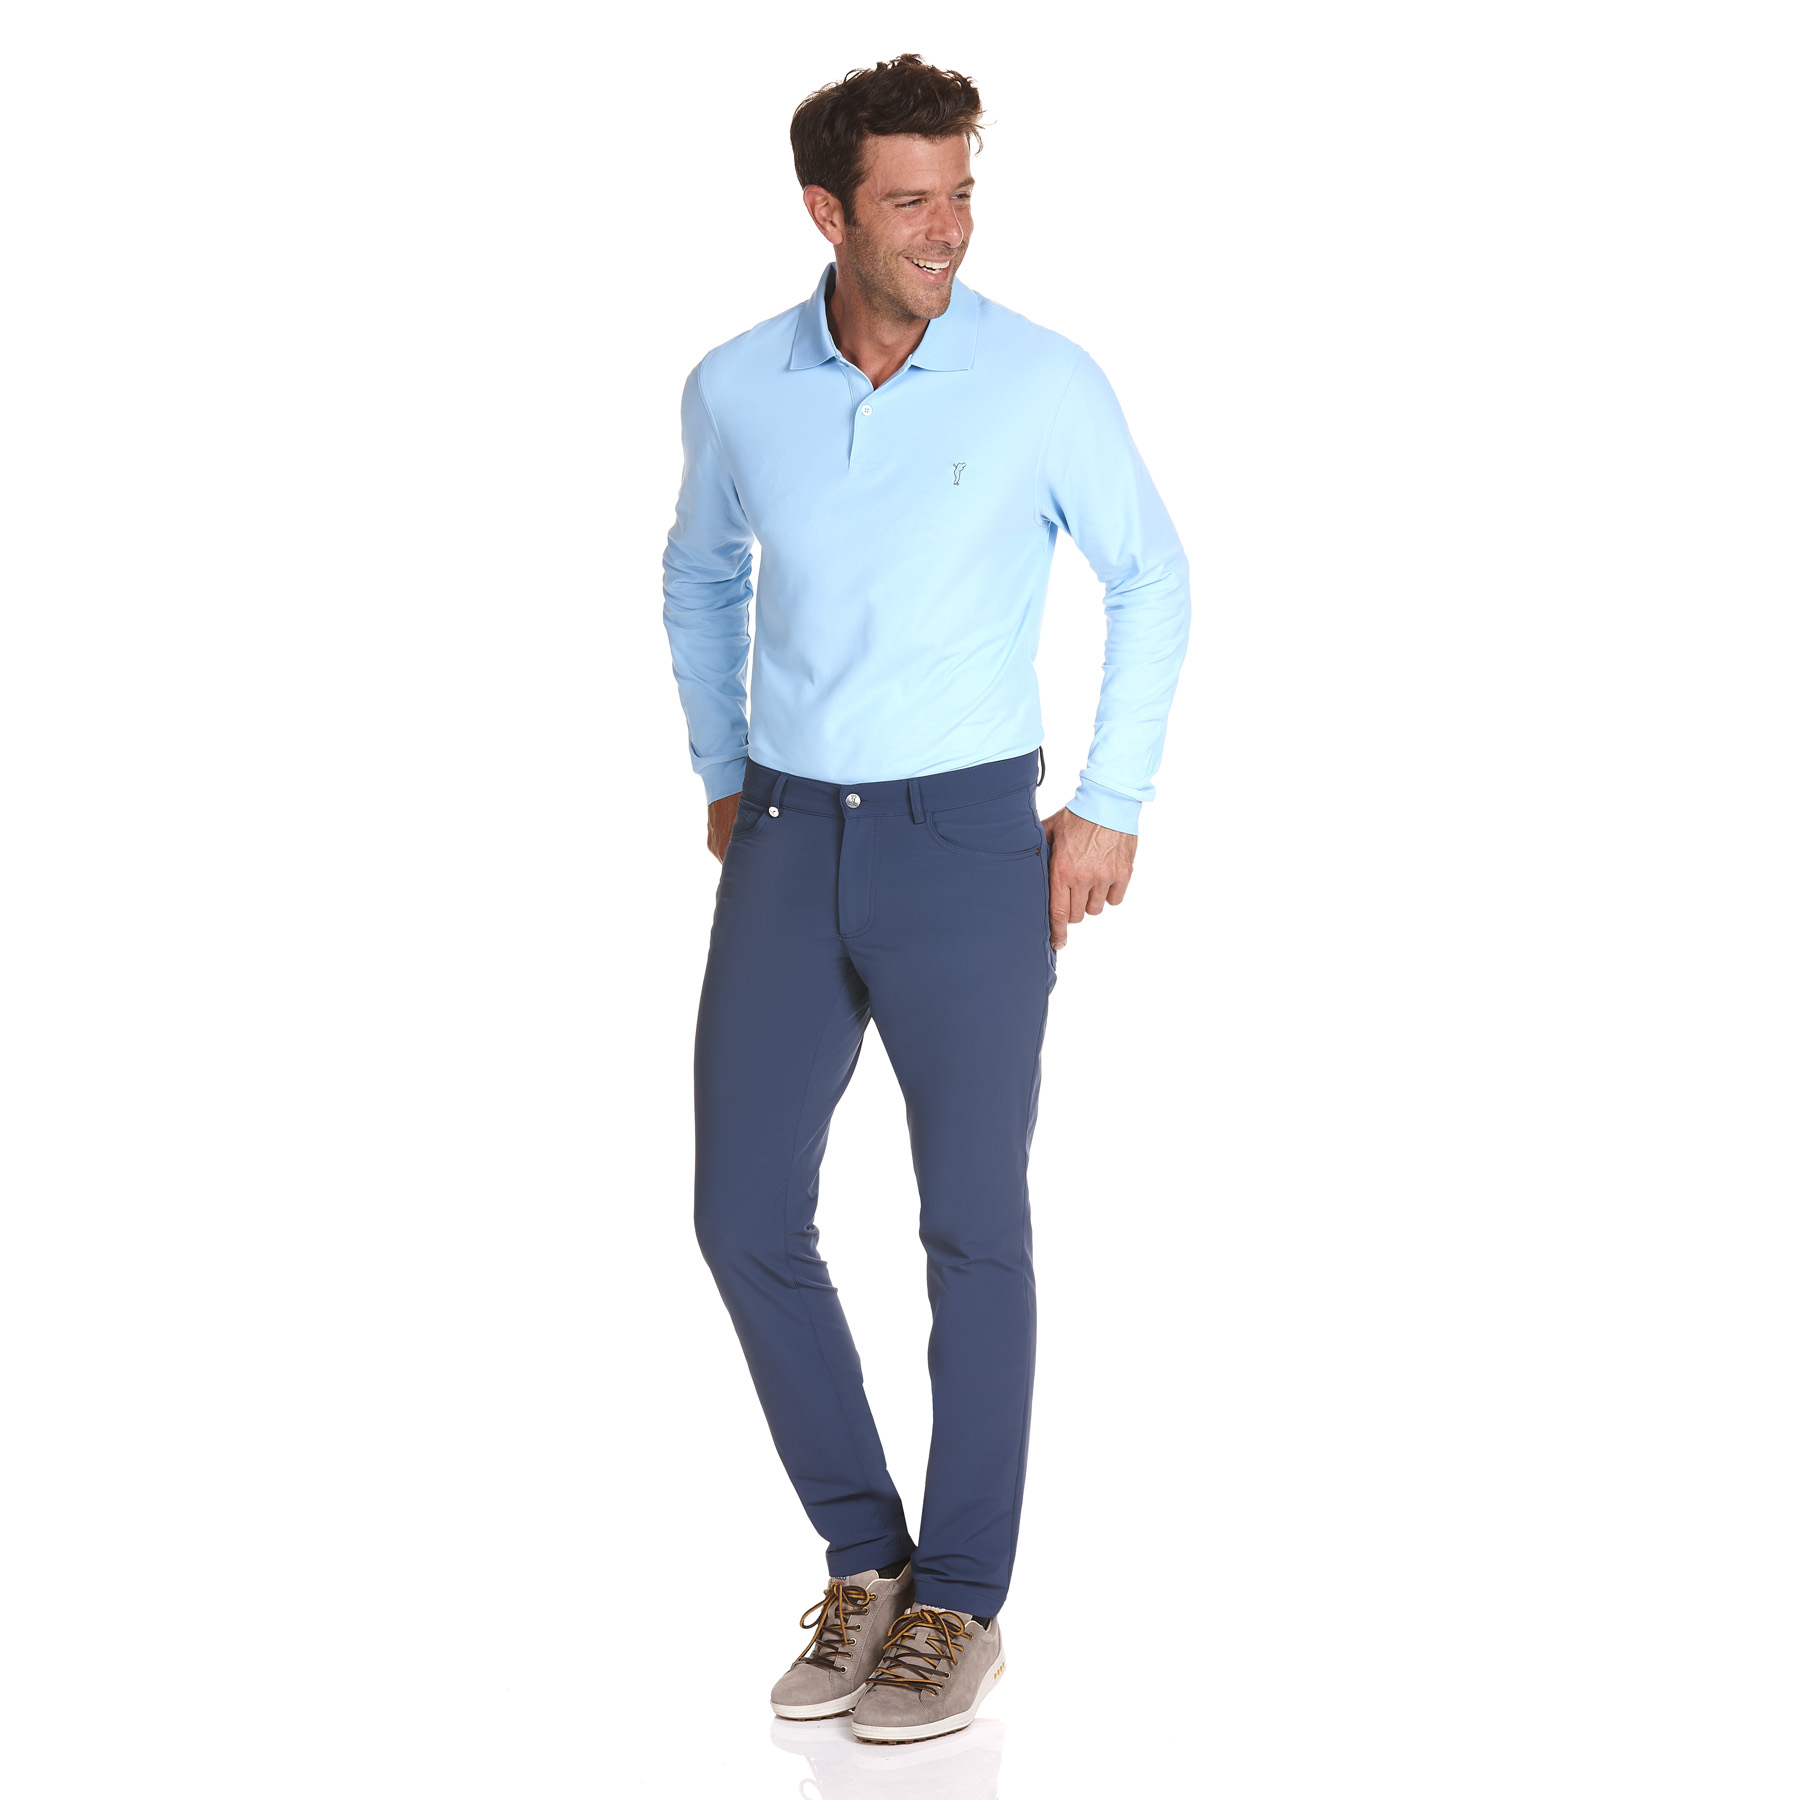 Moderne Herren 4-Way-Stretch Funktions-Golfhose in Extra Slim Fit